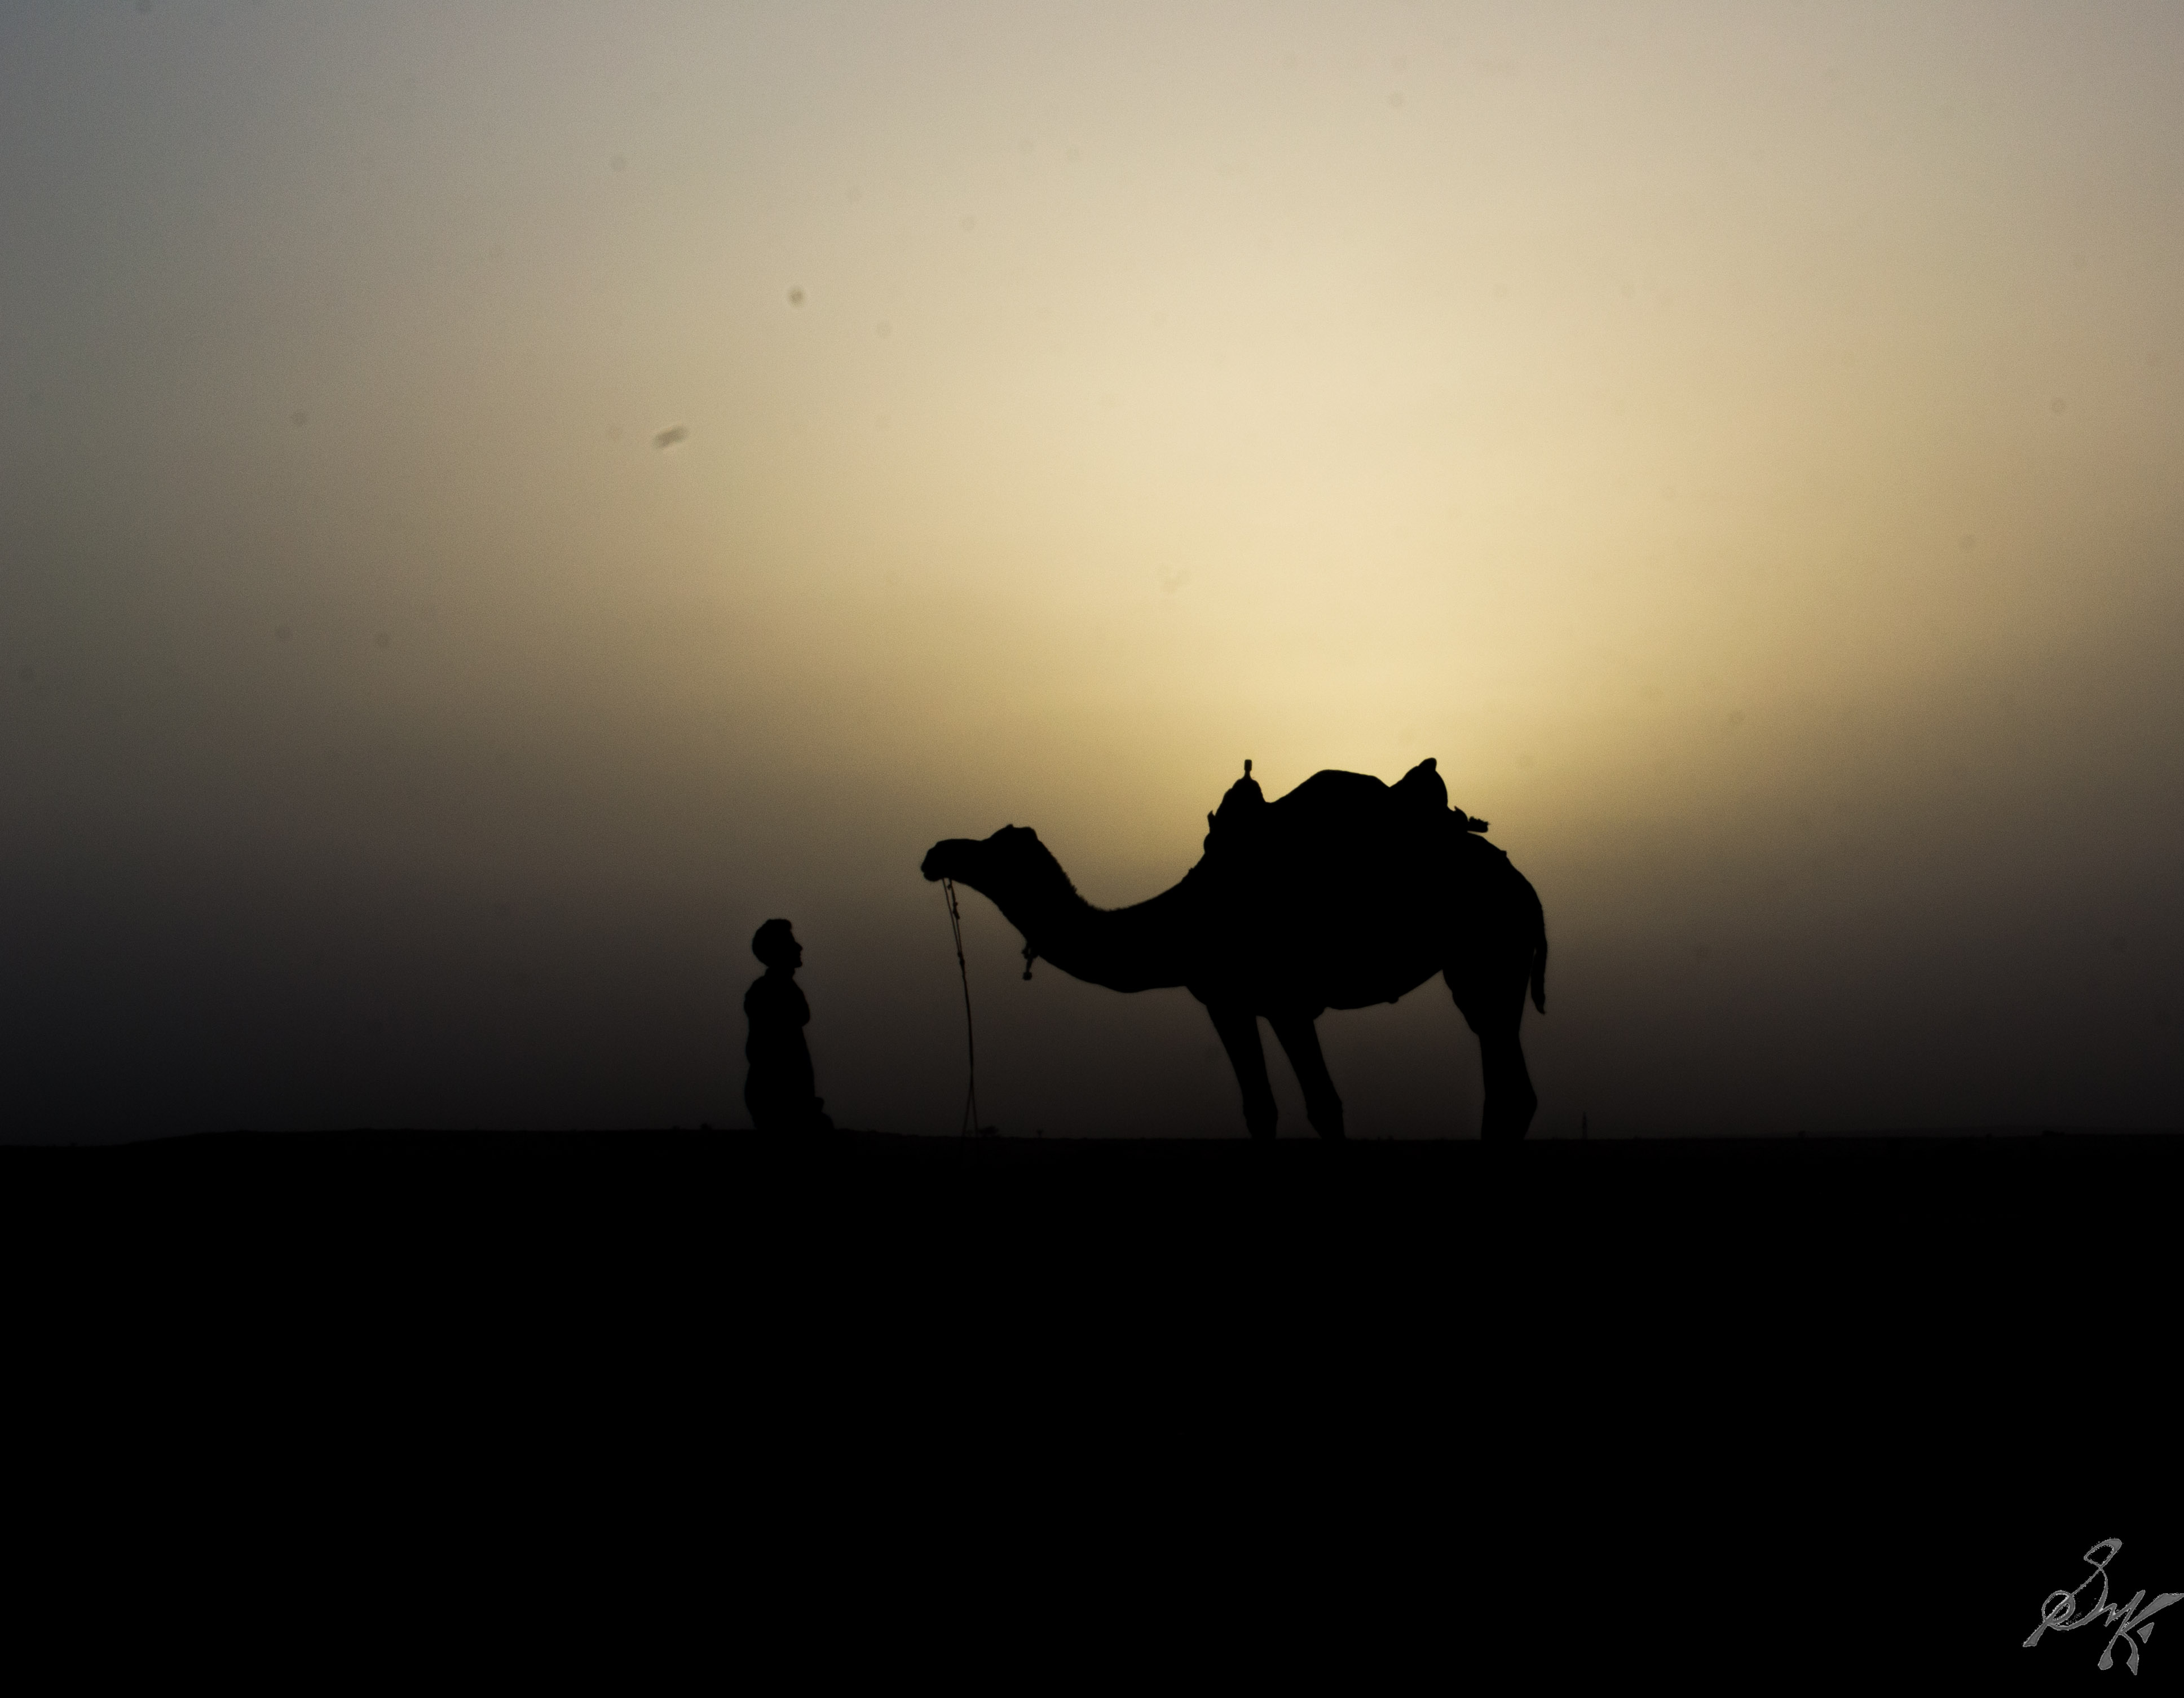 Camel and Man in Thar Desert India shot in silhouette